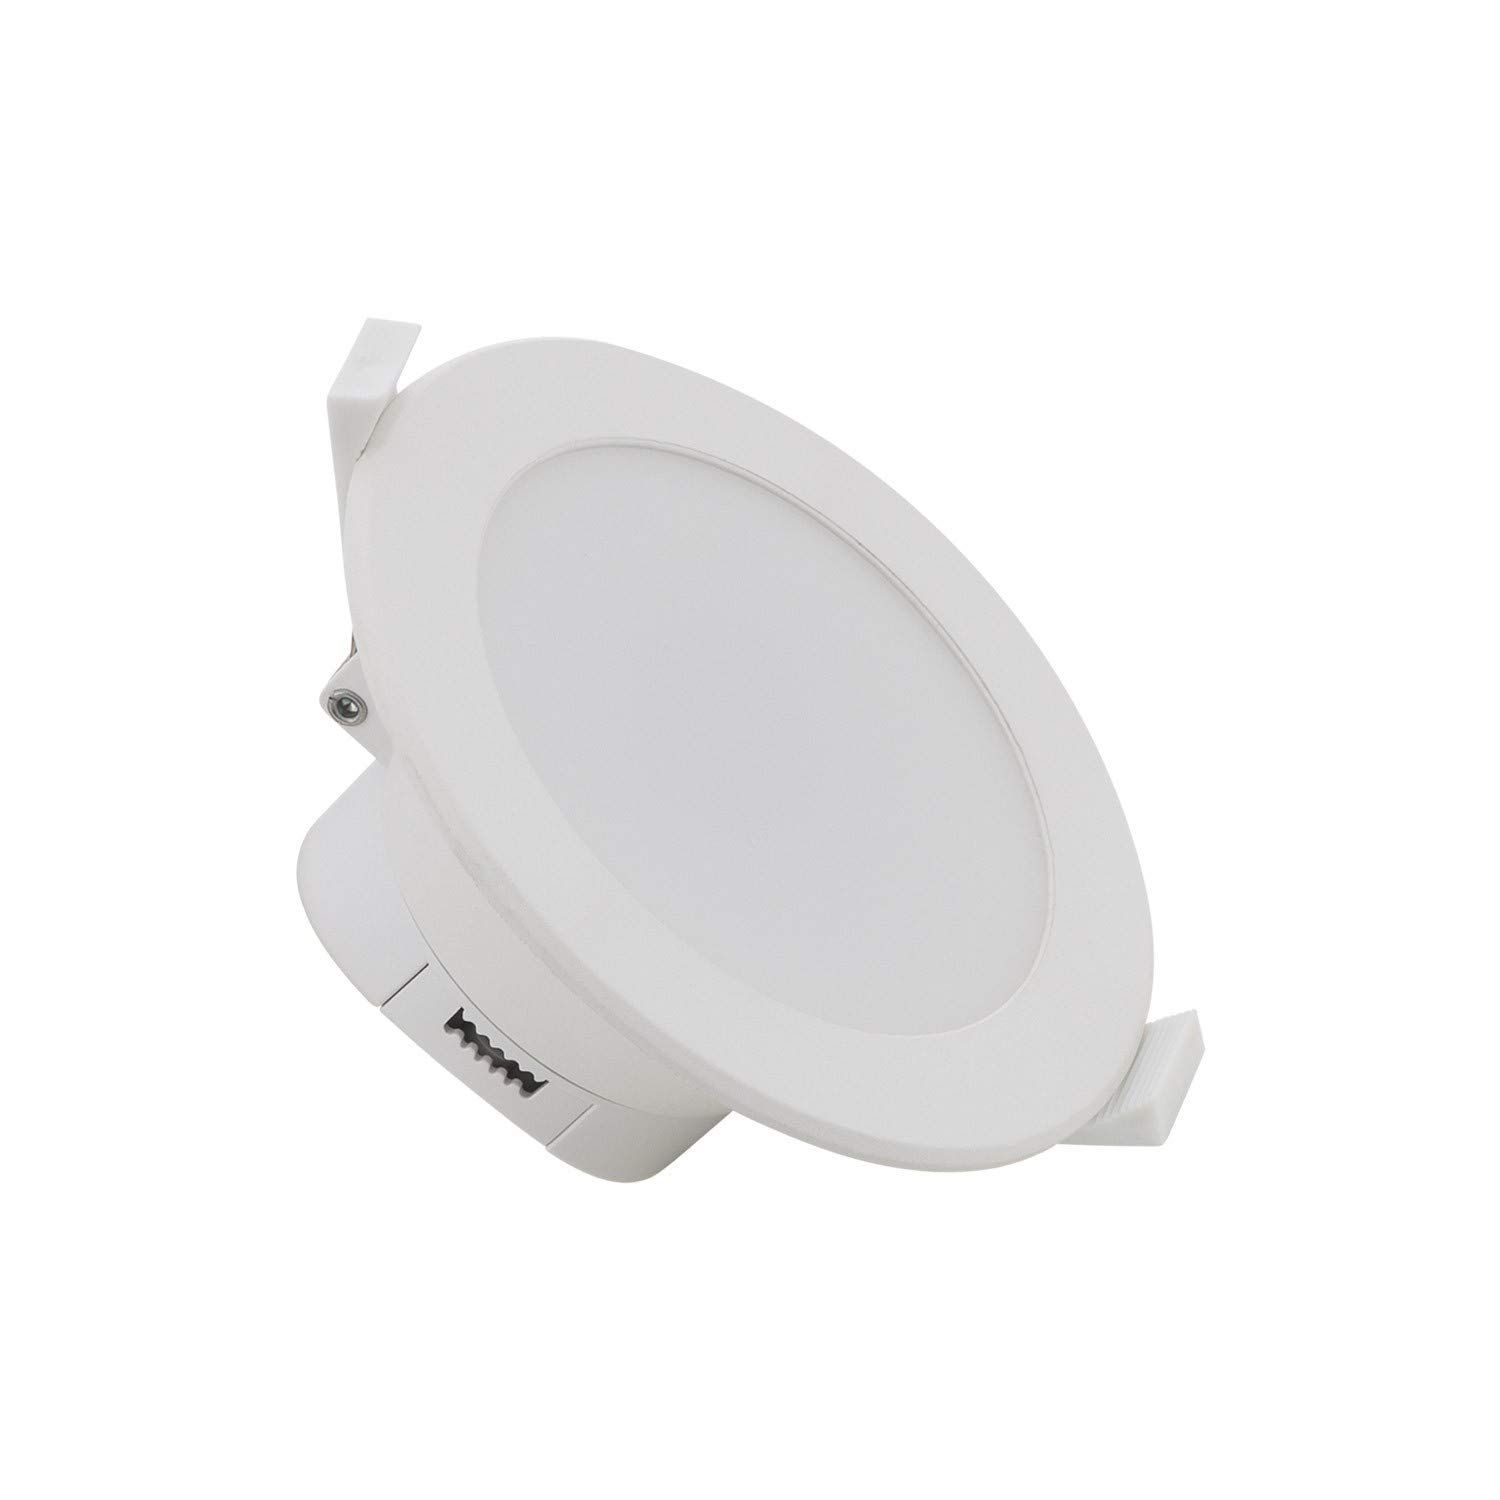 Downlight Led Strahler Rund Spezial 10w Ip44 Warmes Wei 3000k In 2020 Led Strahler Led Strahler